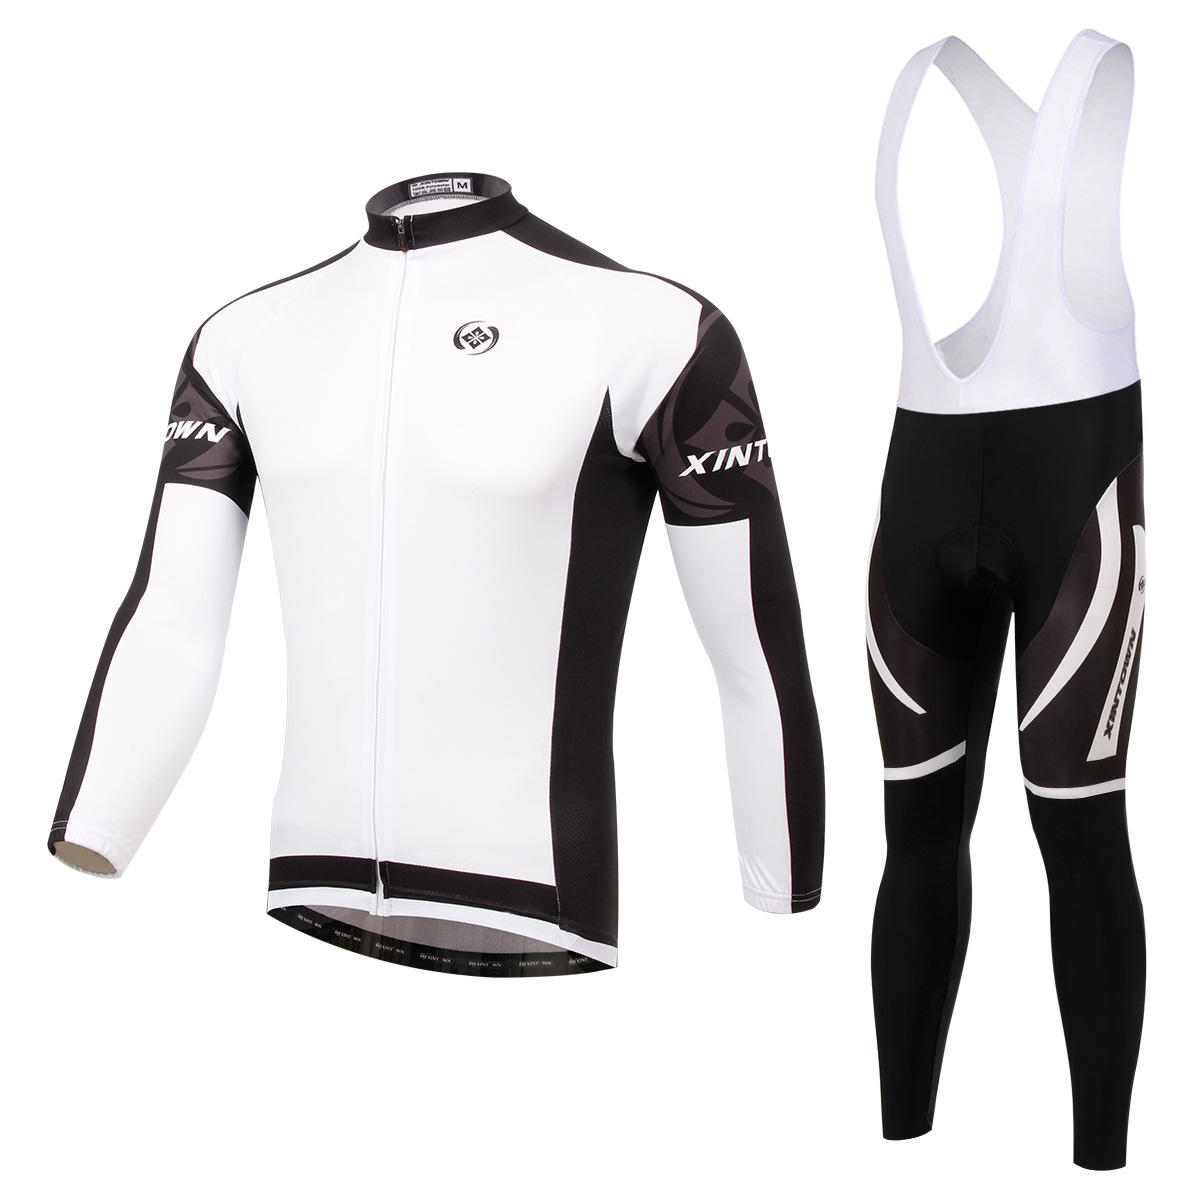 XINTOWN Dimon white bike riding jersey long sleeve suit wear cycling suits fleece wind warm functional underwear